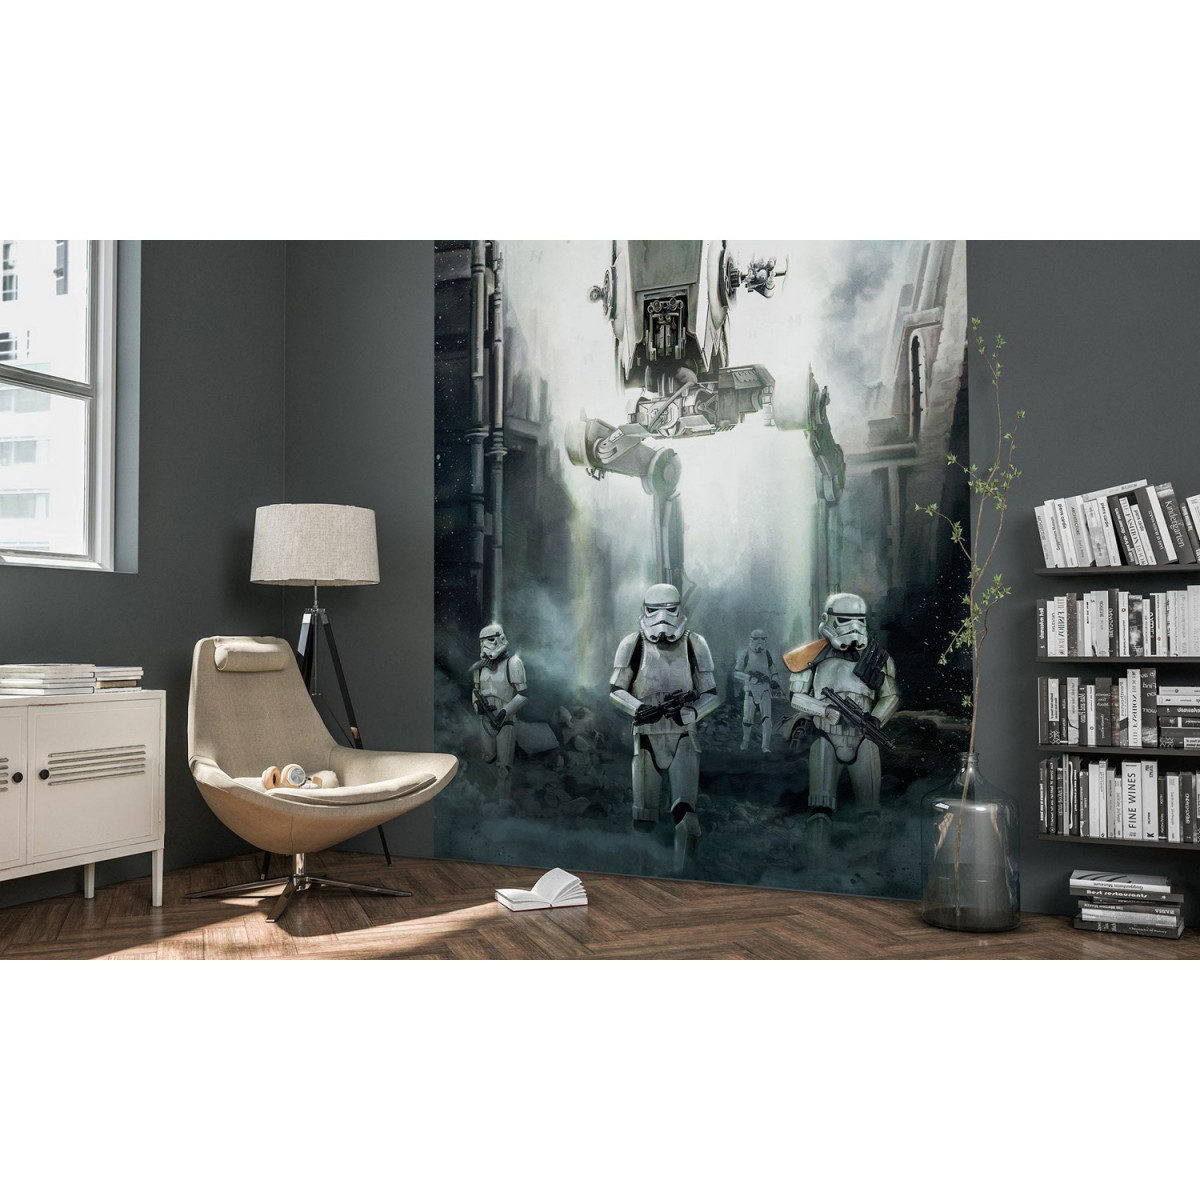 Poster XXL Star Wars mise en situation